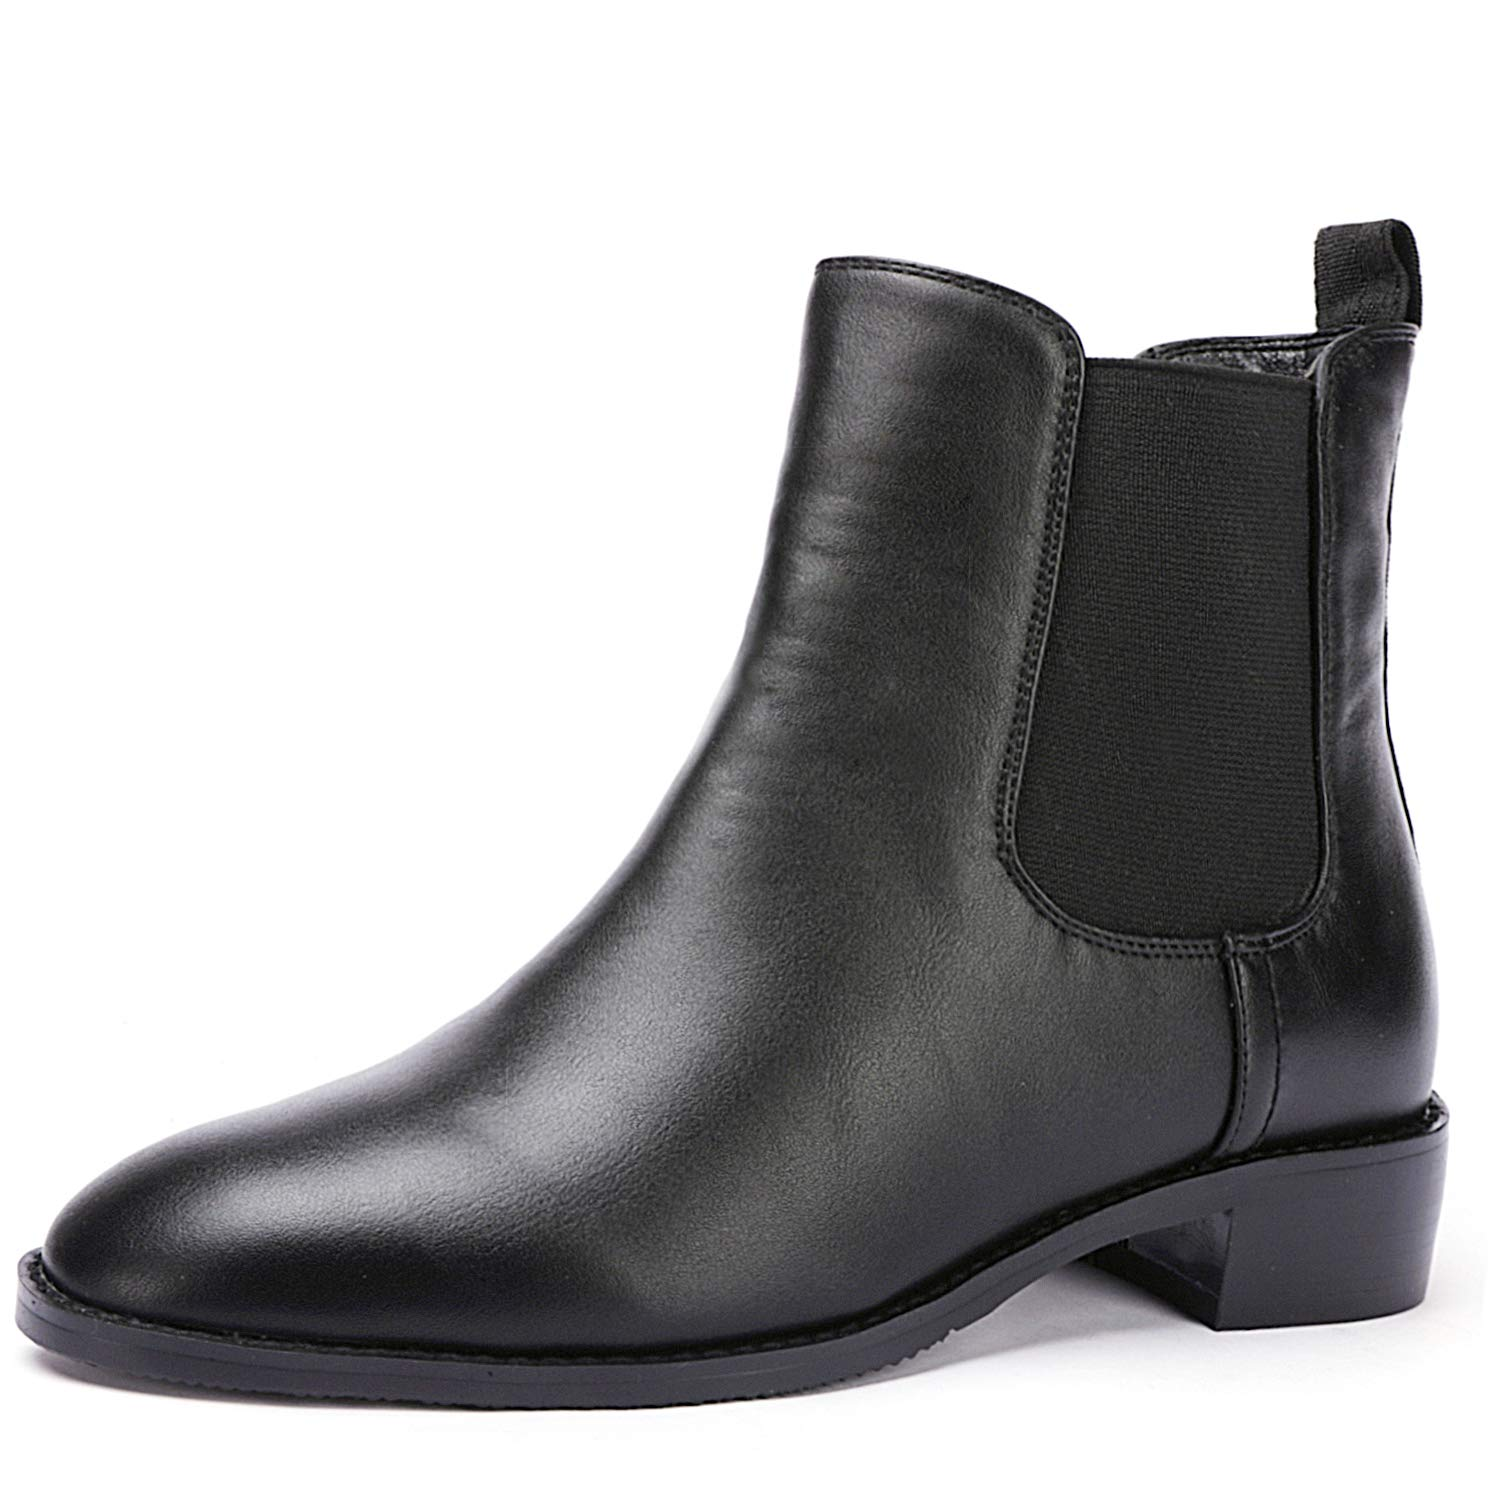 Odema Womens PU Leather Chelsea Boots